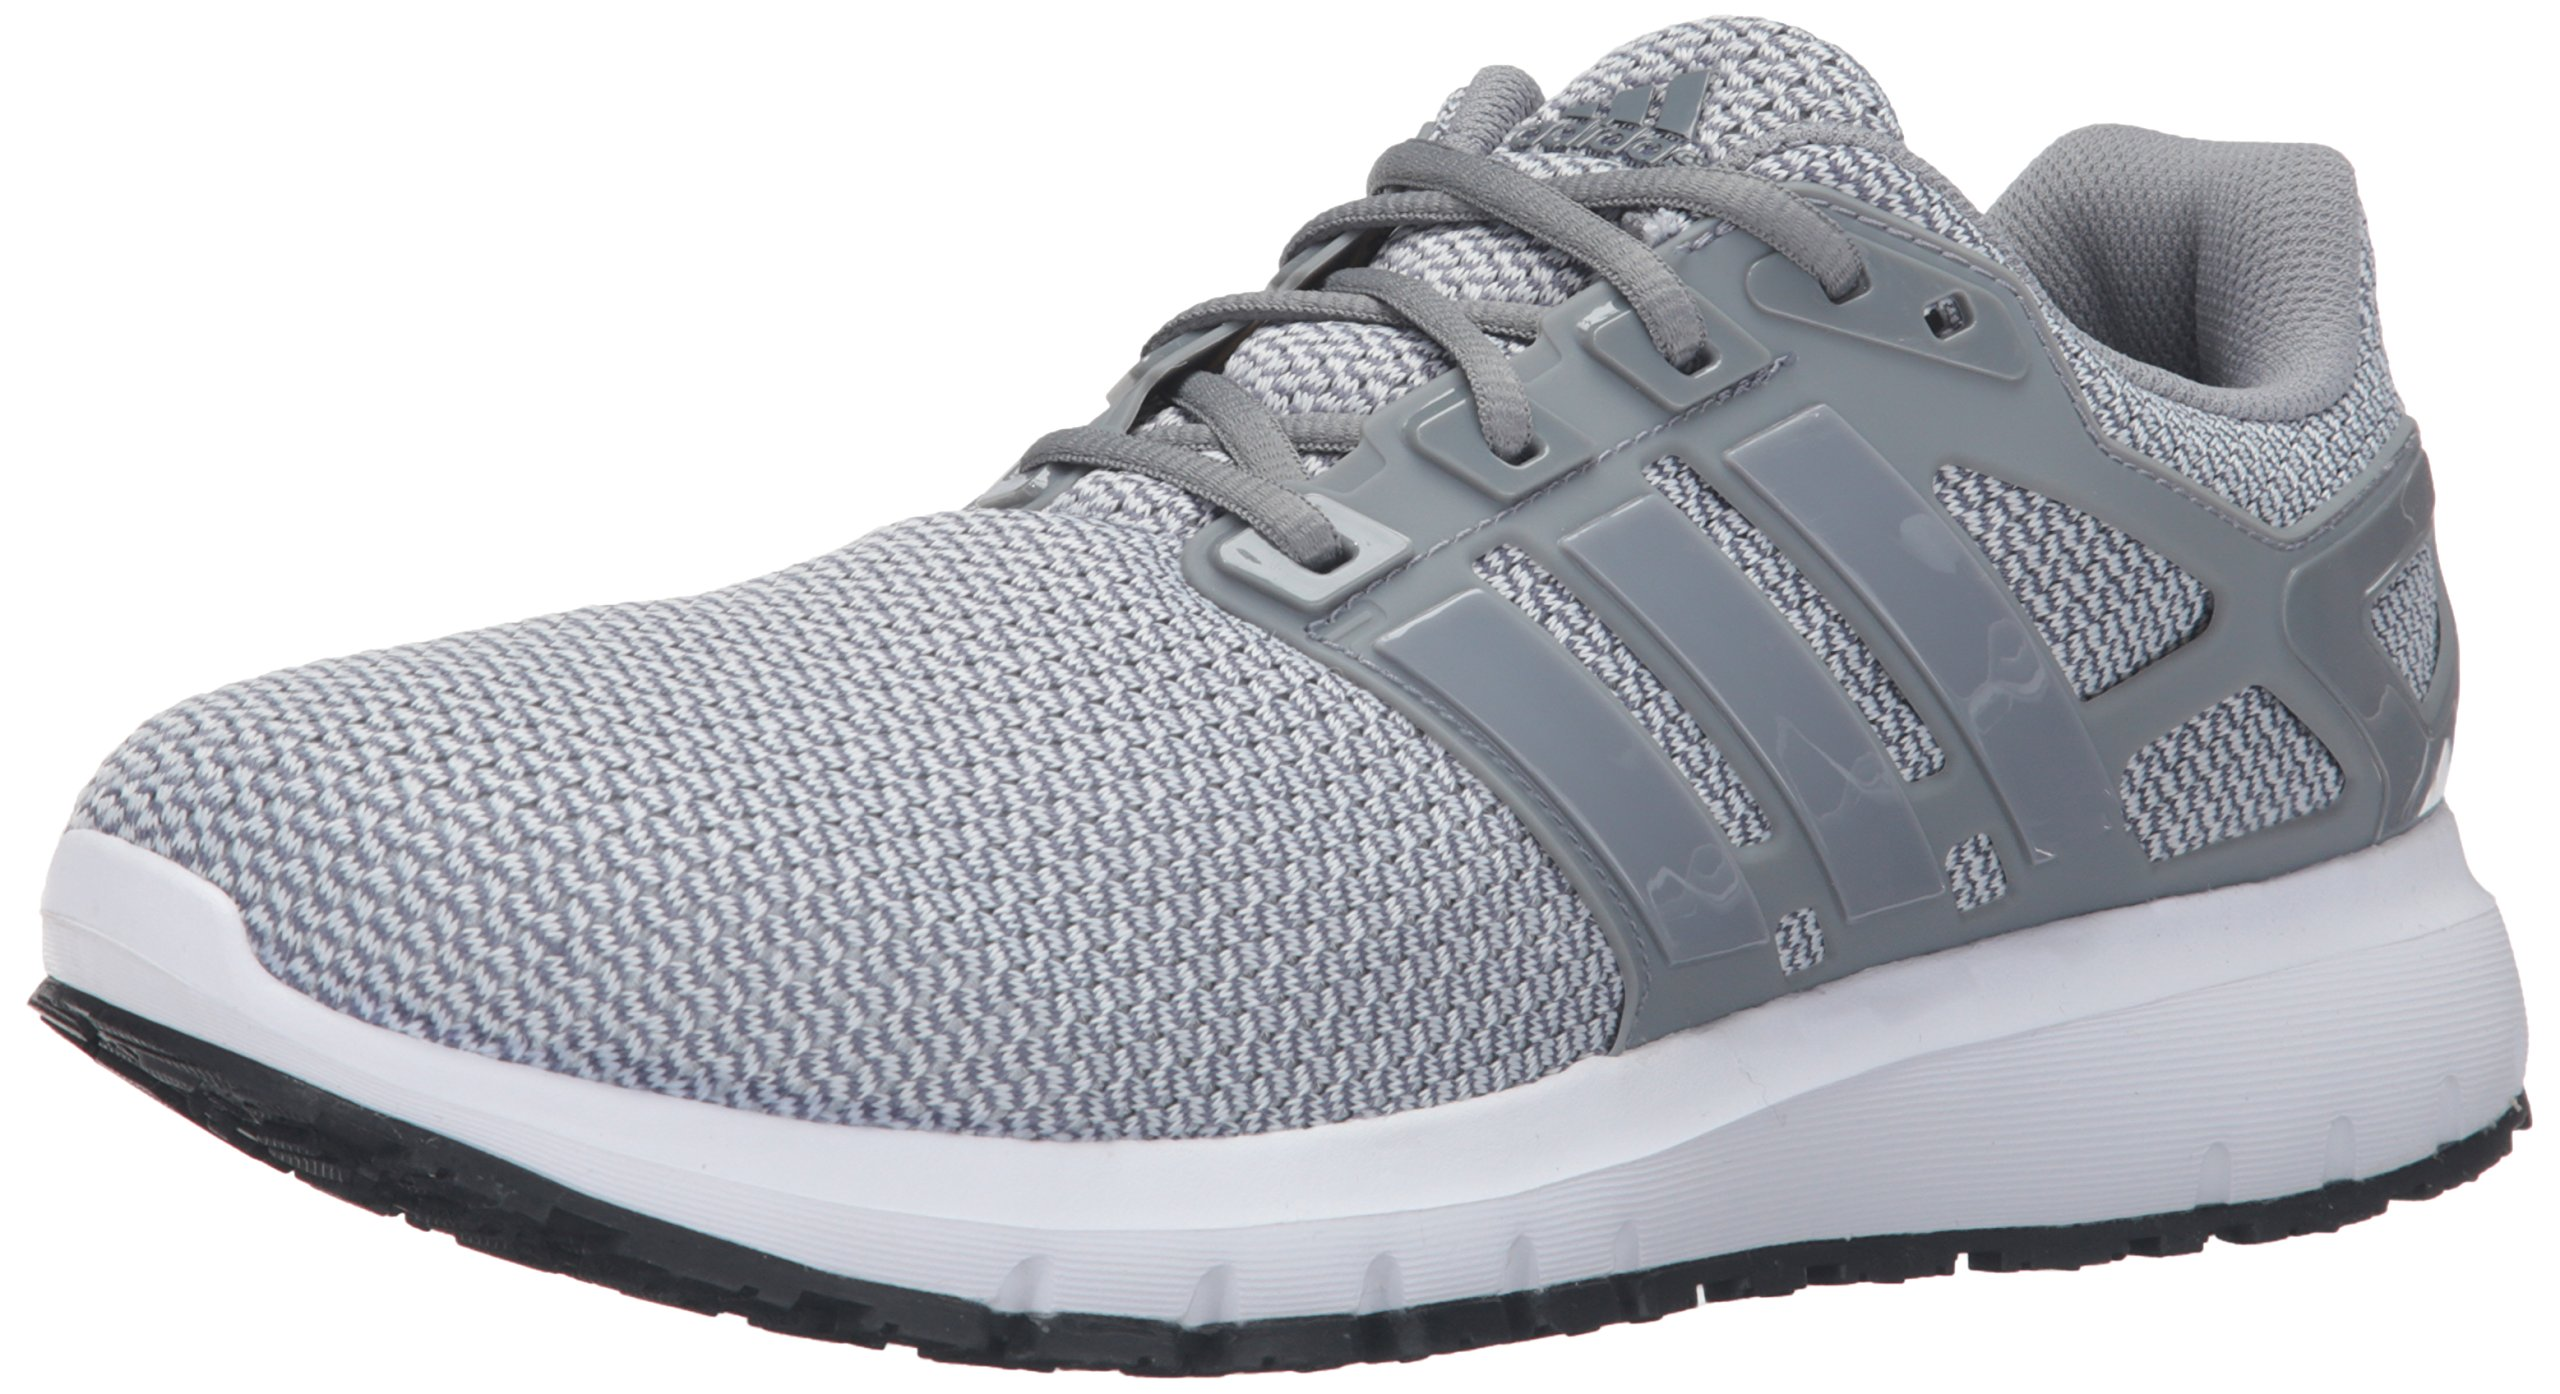 8df5c67abcd7 Galleon - Adidas Men s Energy Cloud WTC M Running Shoe Tech Clear Grey